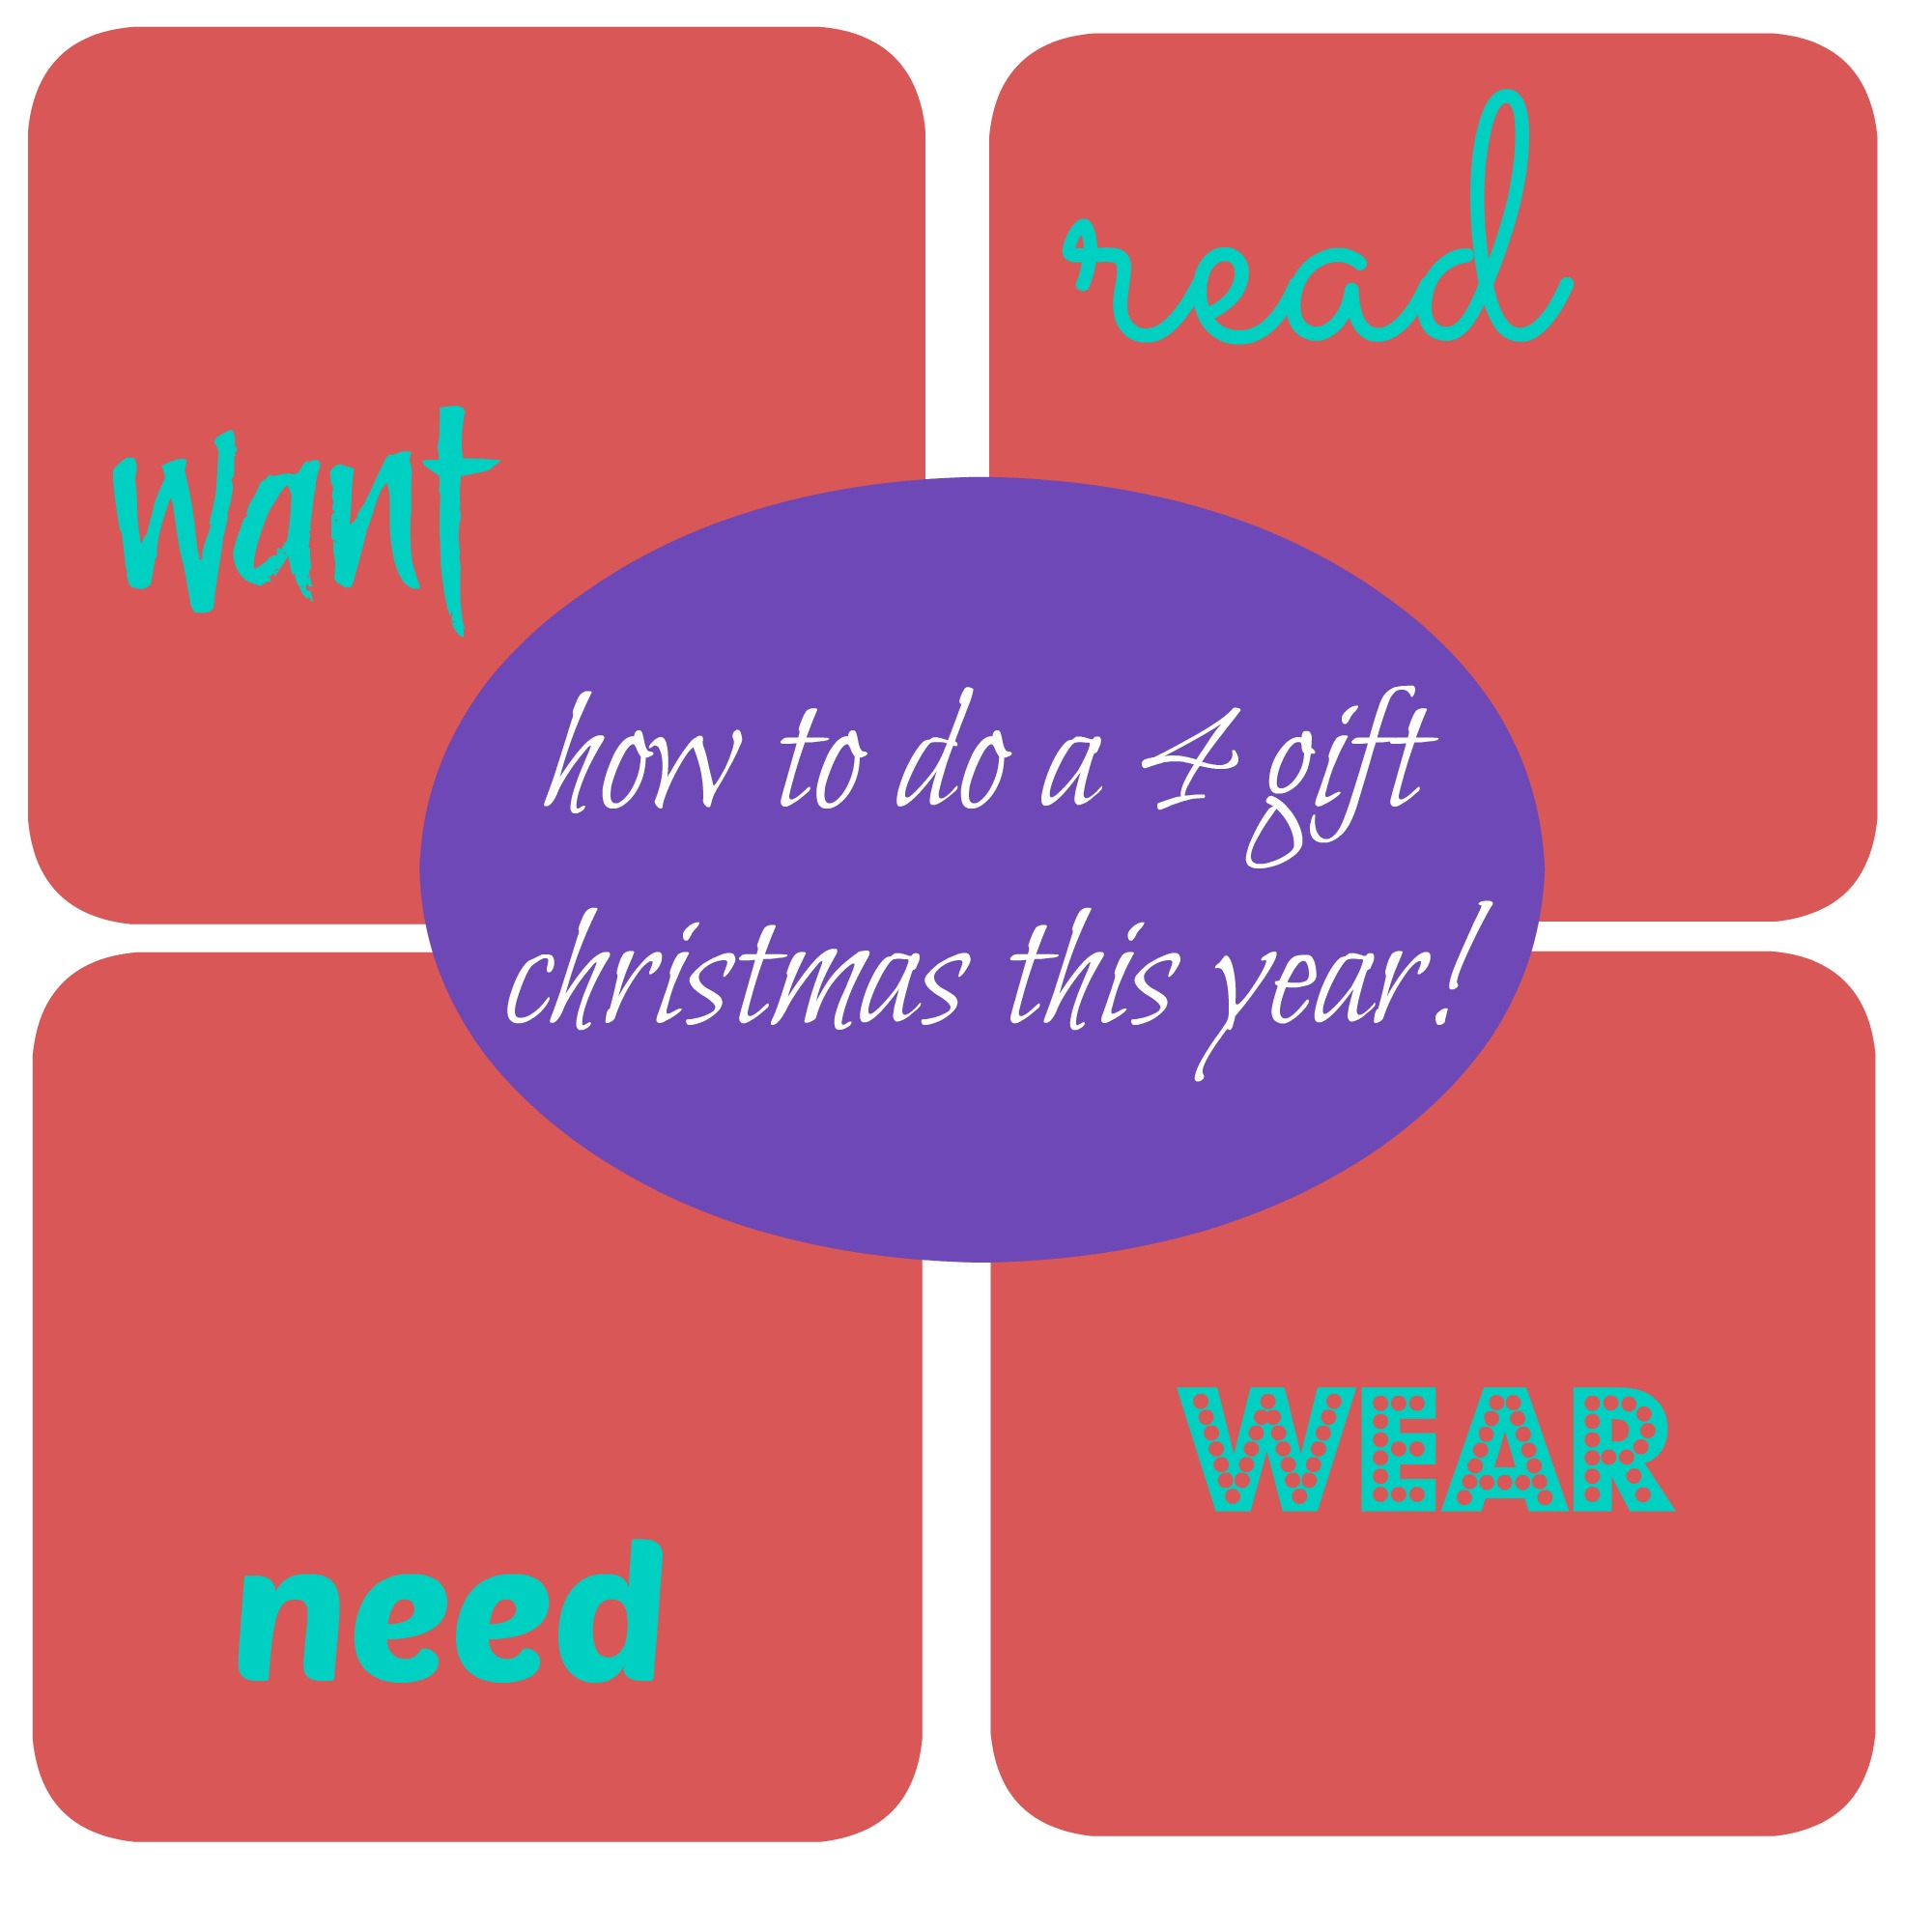 how to do a 4 gift christmas this year